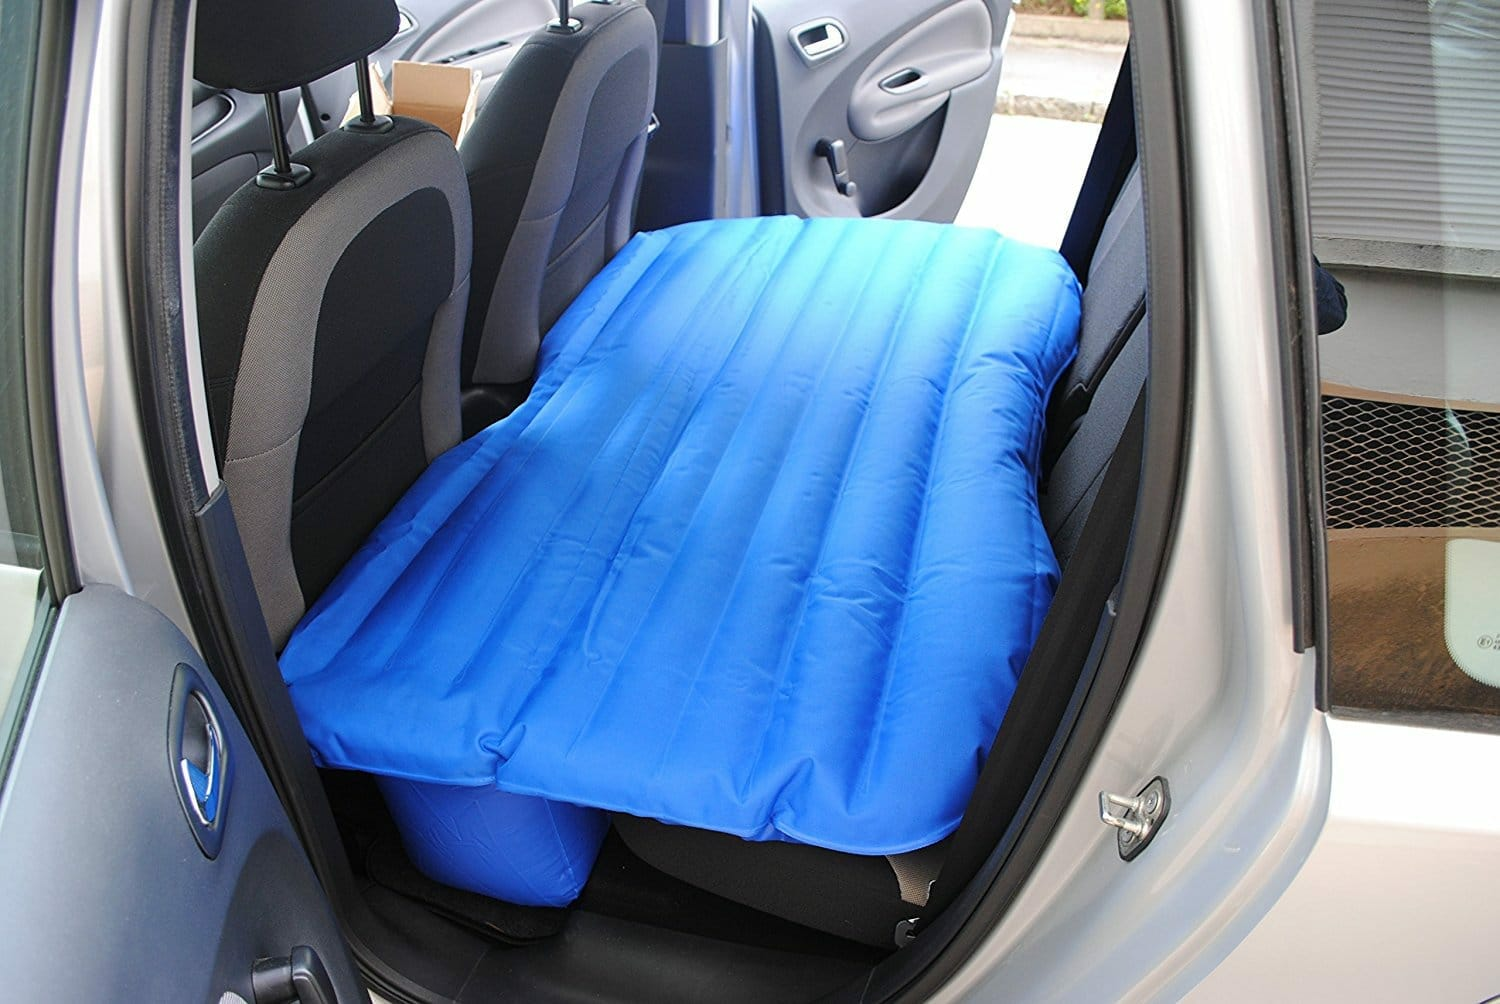 Matelas gonflable insolite